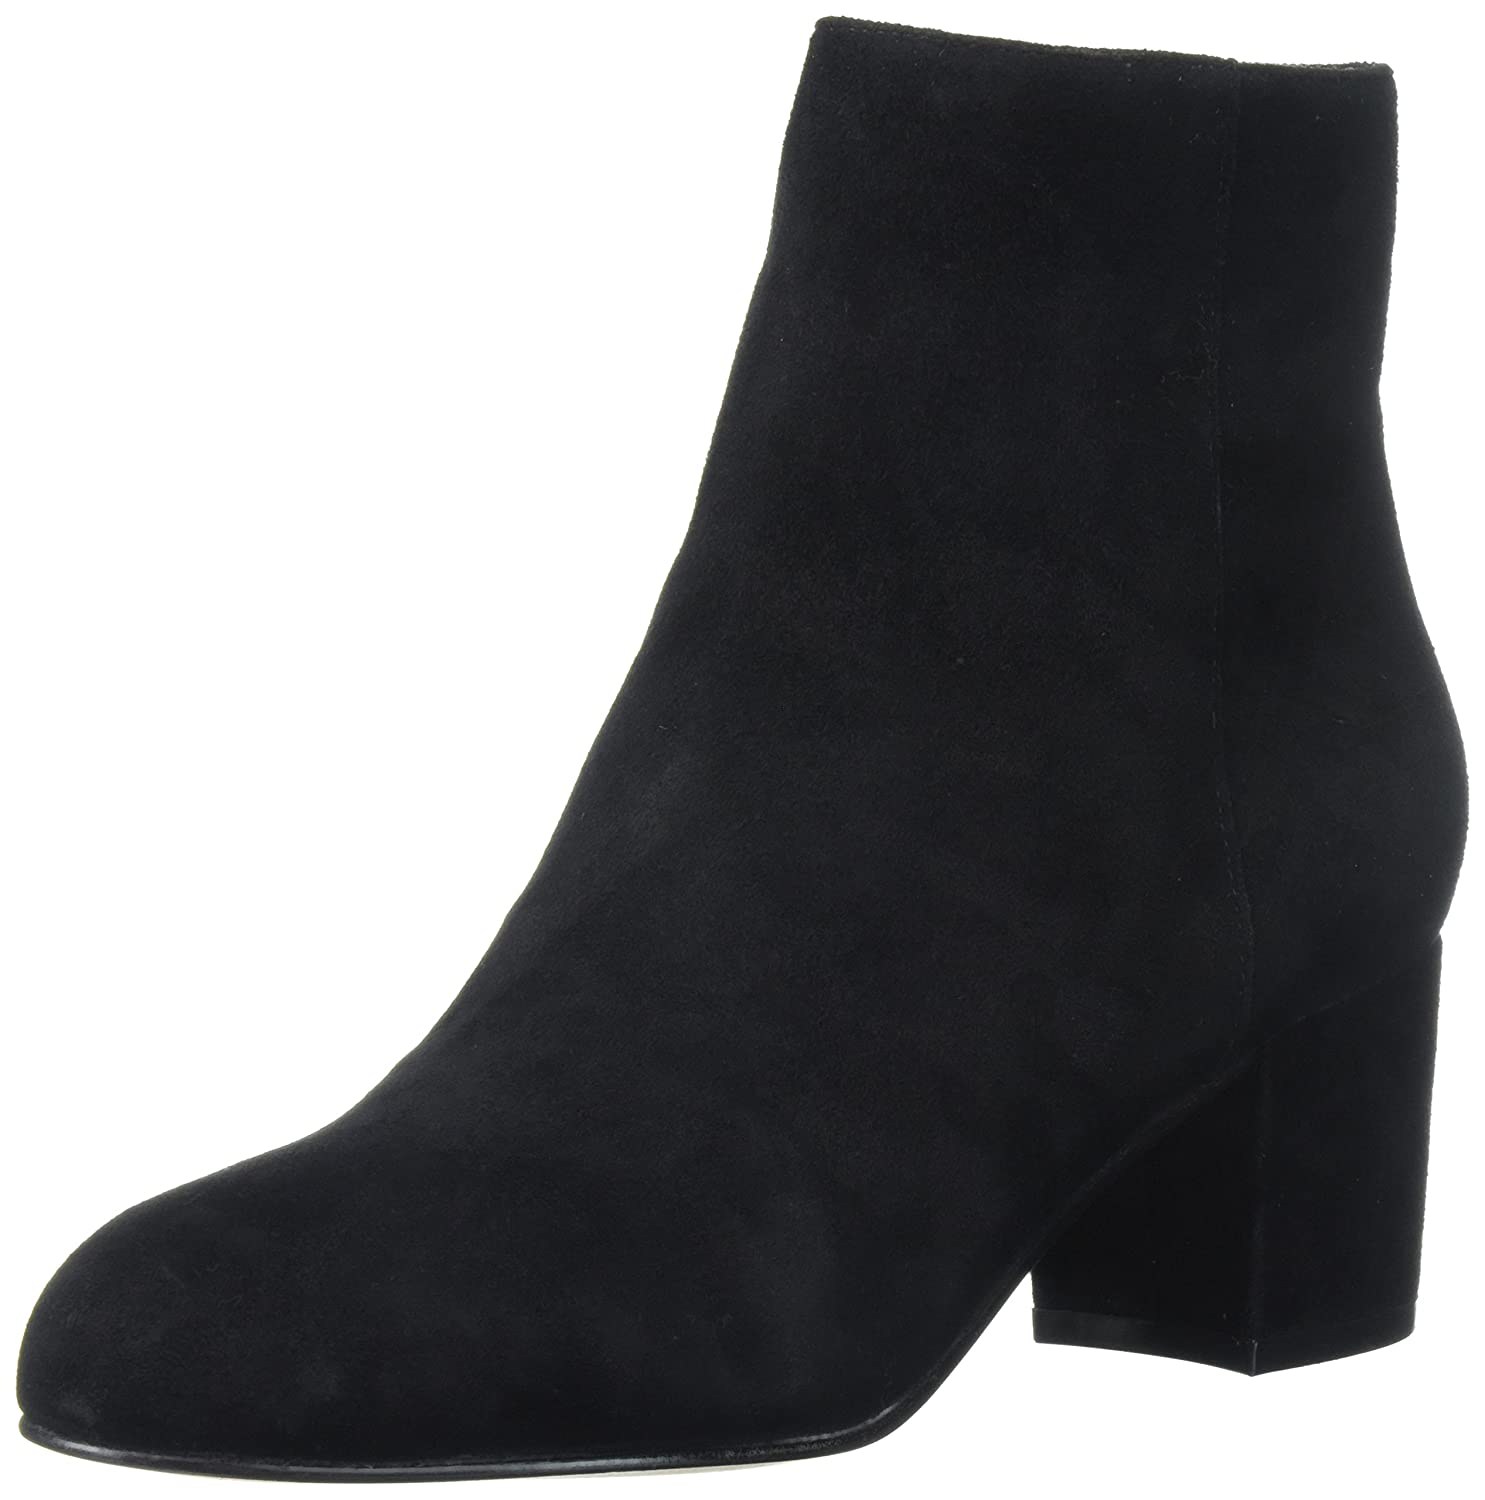 ALDO Women's Ciredia Ankle Bootie B072ND2B4B 8.5 B(M) US|Black Suede